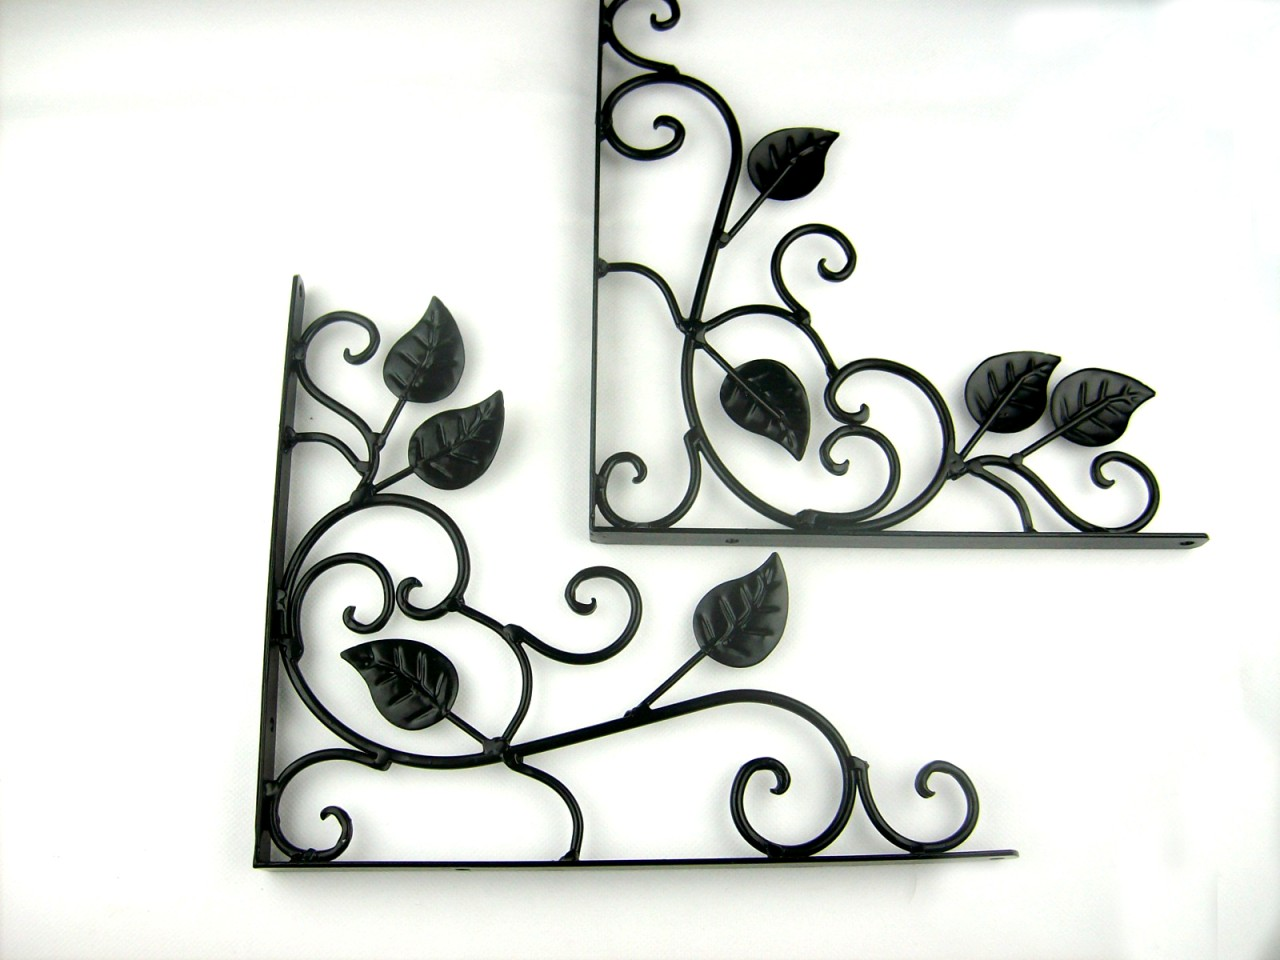 pair of iron metal decorative wall shelf brackets brace. Black Bedroom Furniture Sets. Home Design Ideas